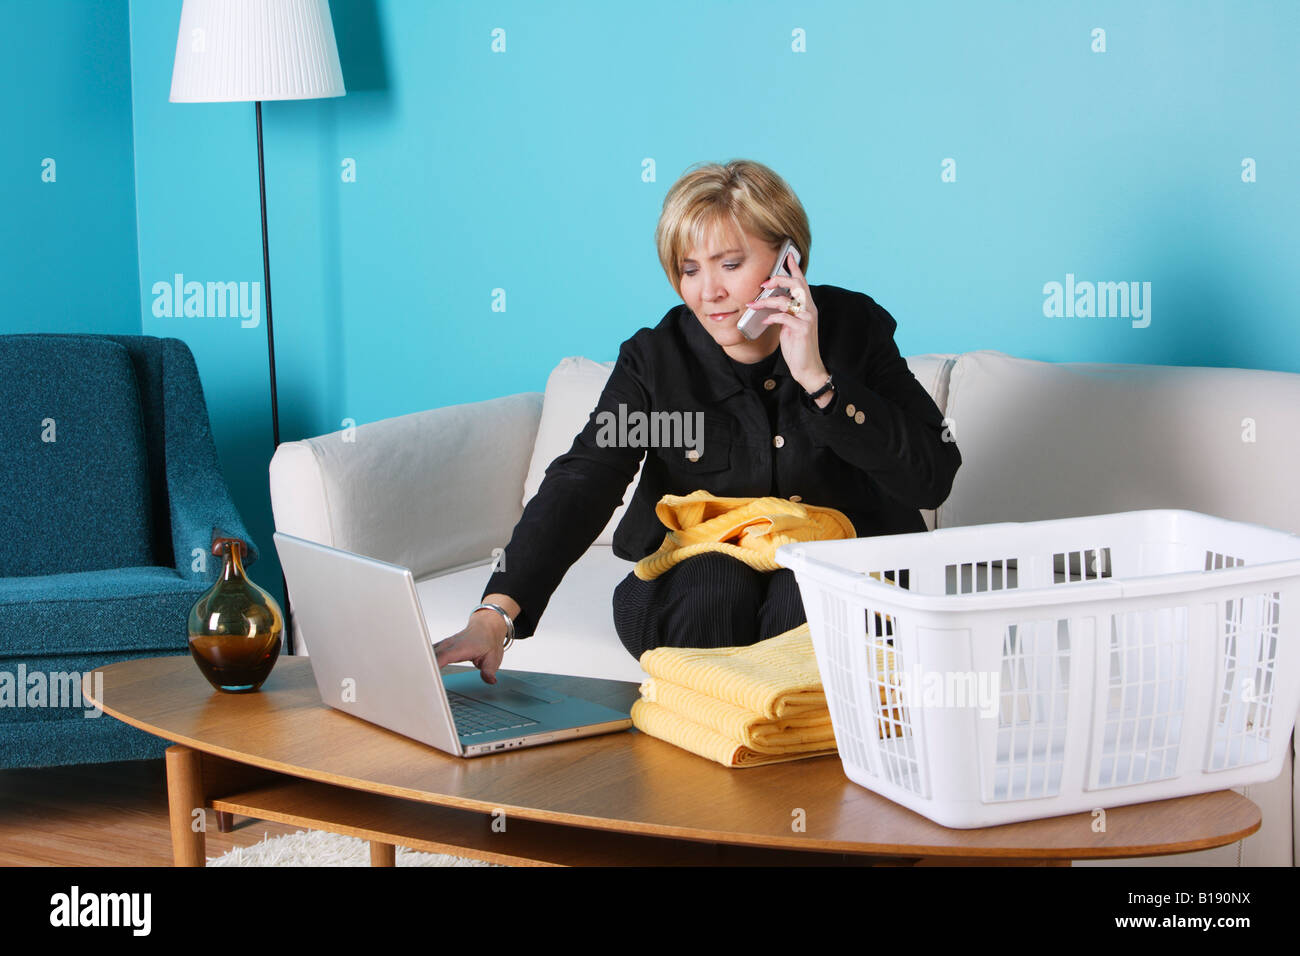 Woman on the phone, working on her laptop and folding laundry - Stock Image